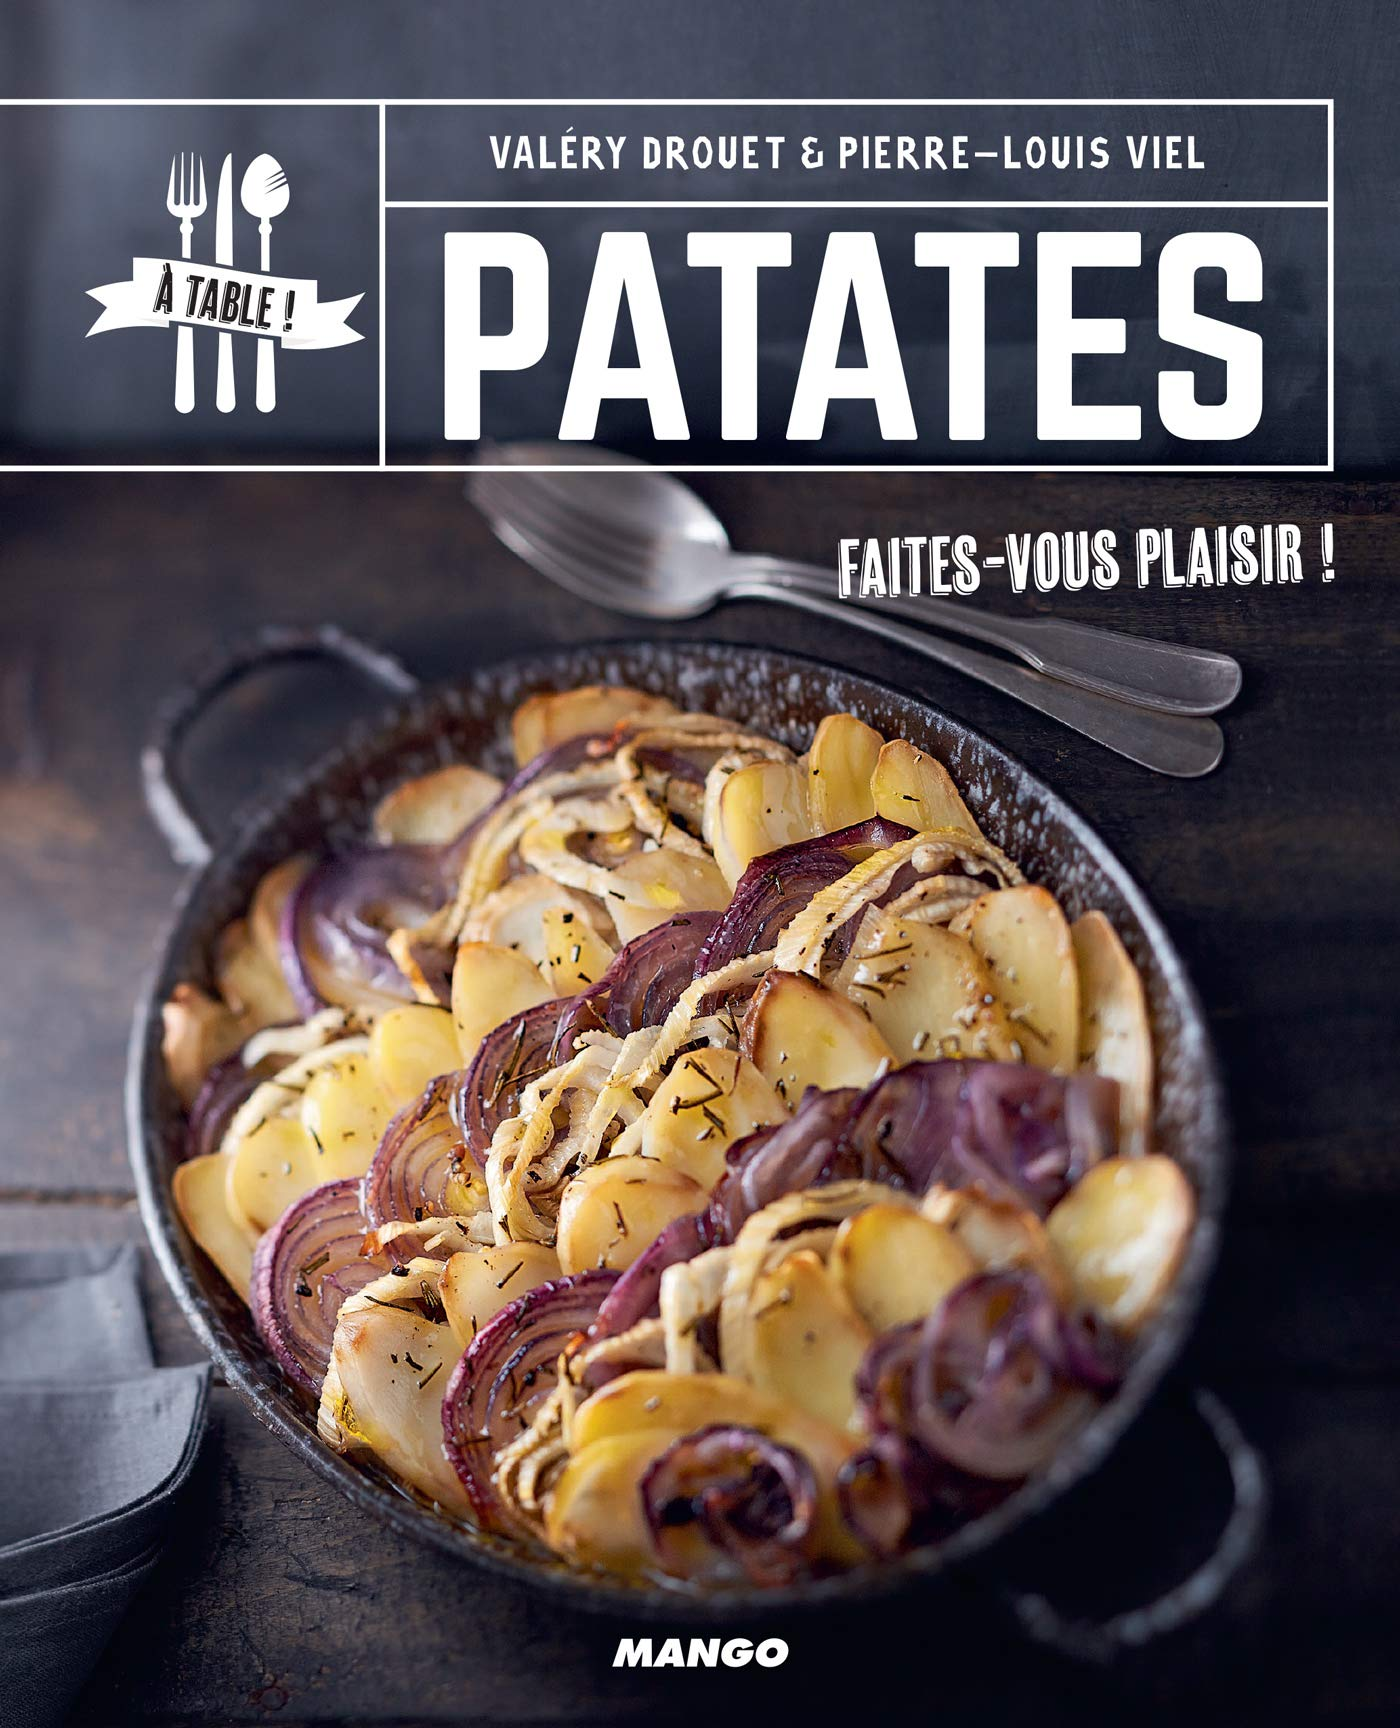 Patates (A table !)